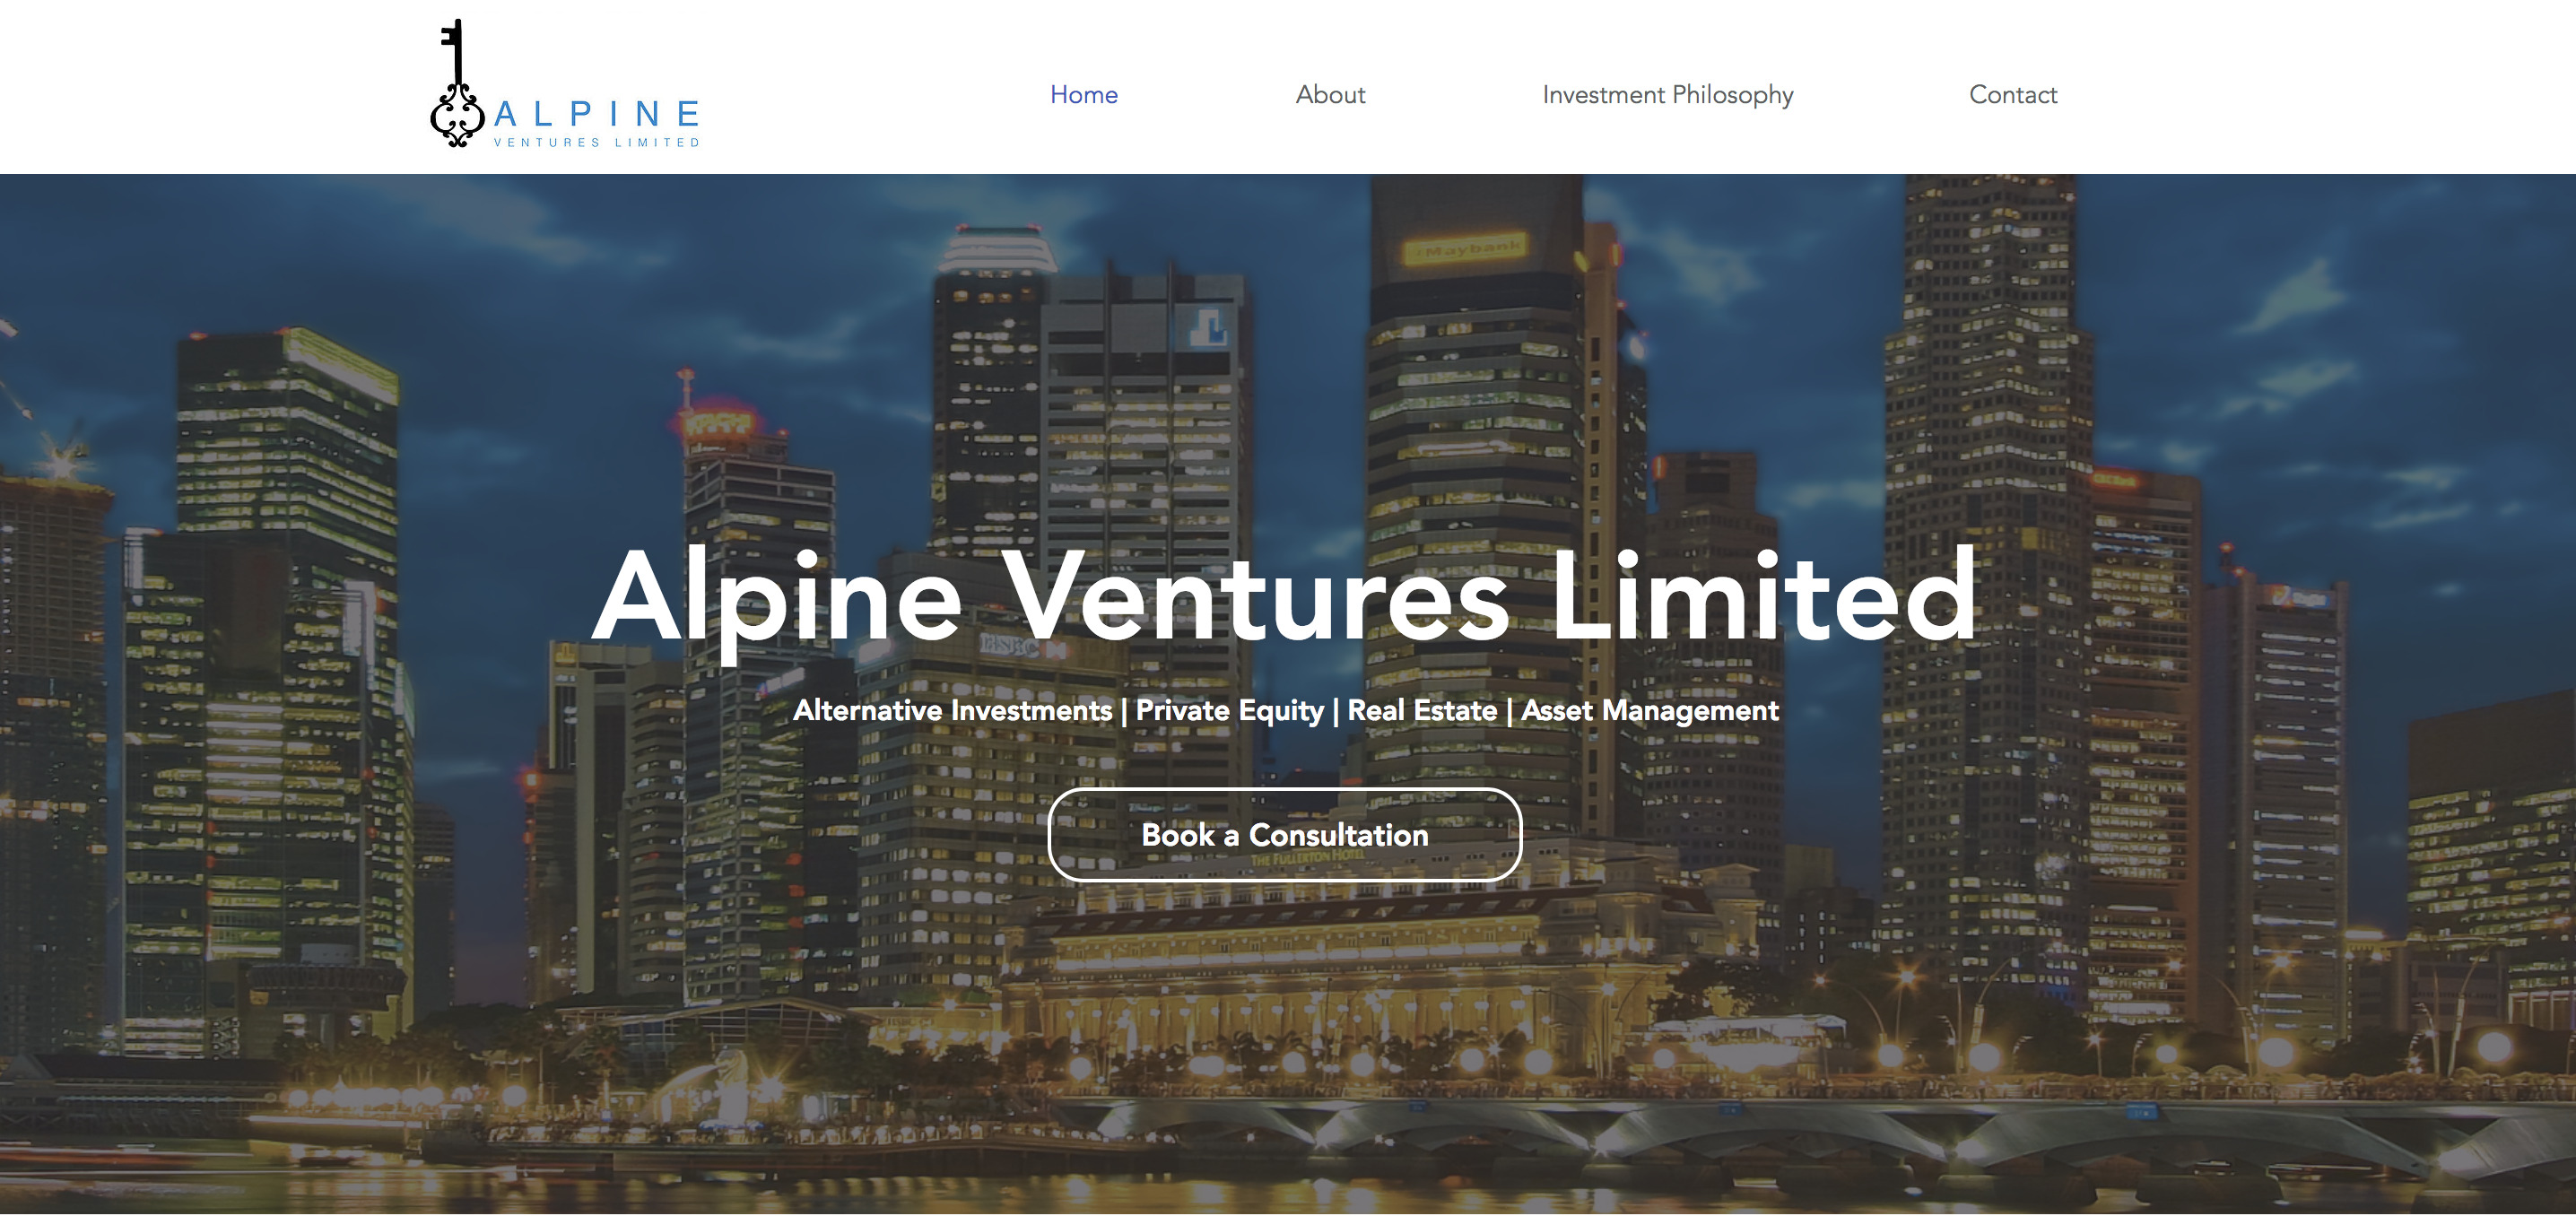 Alpine Ventures Ltd